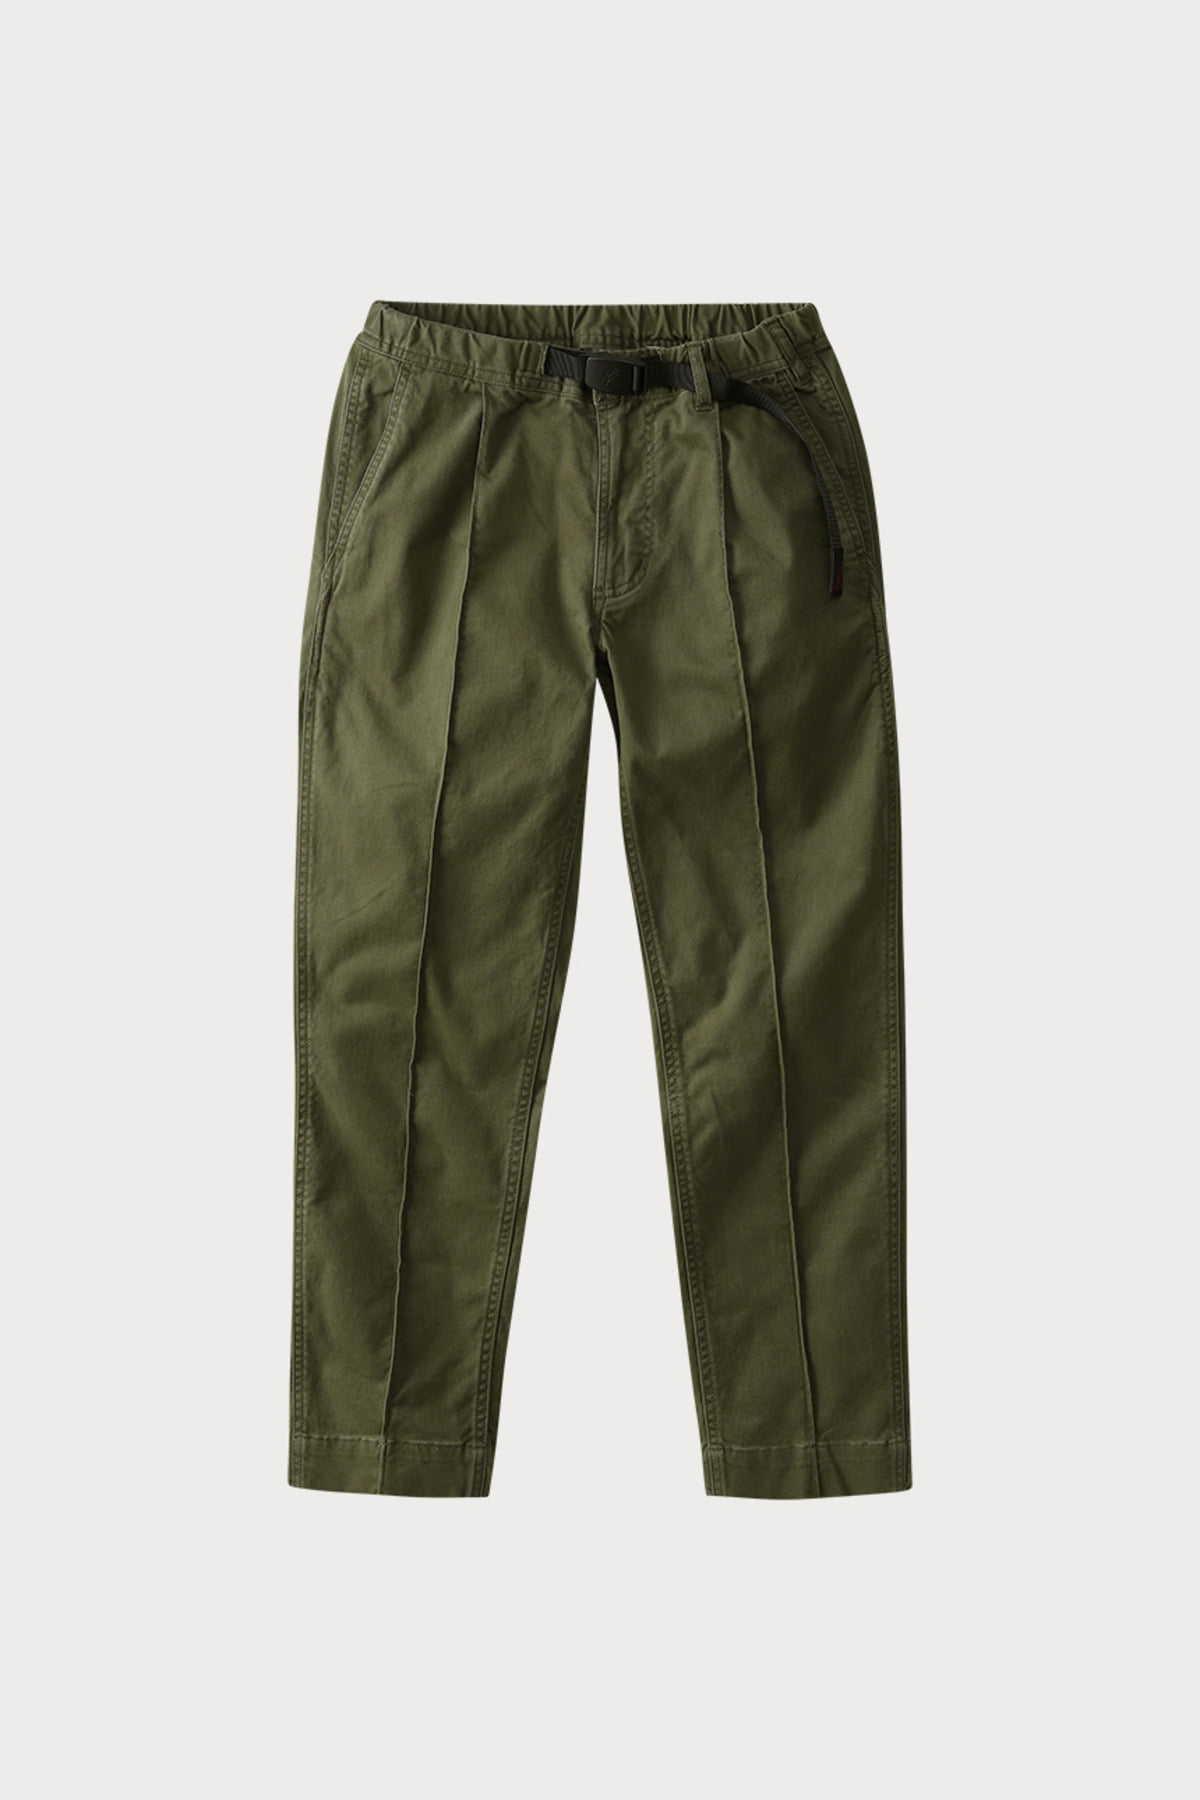 PINTUCK PANTS OLIVE